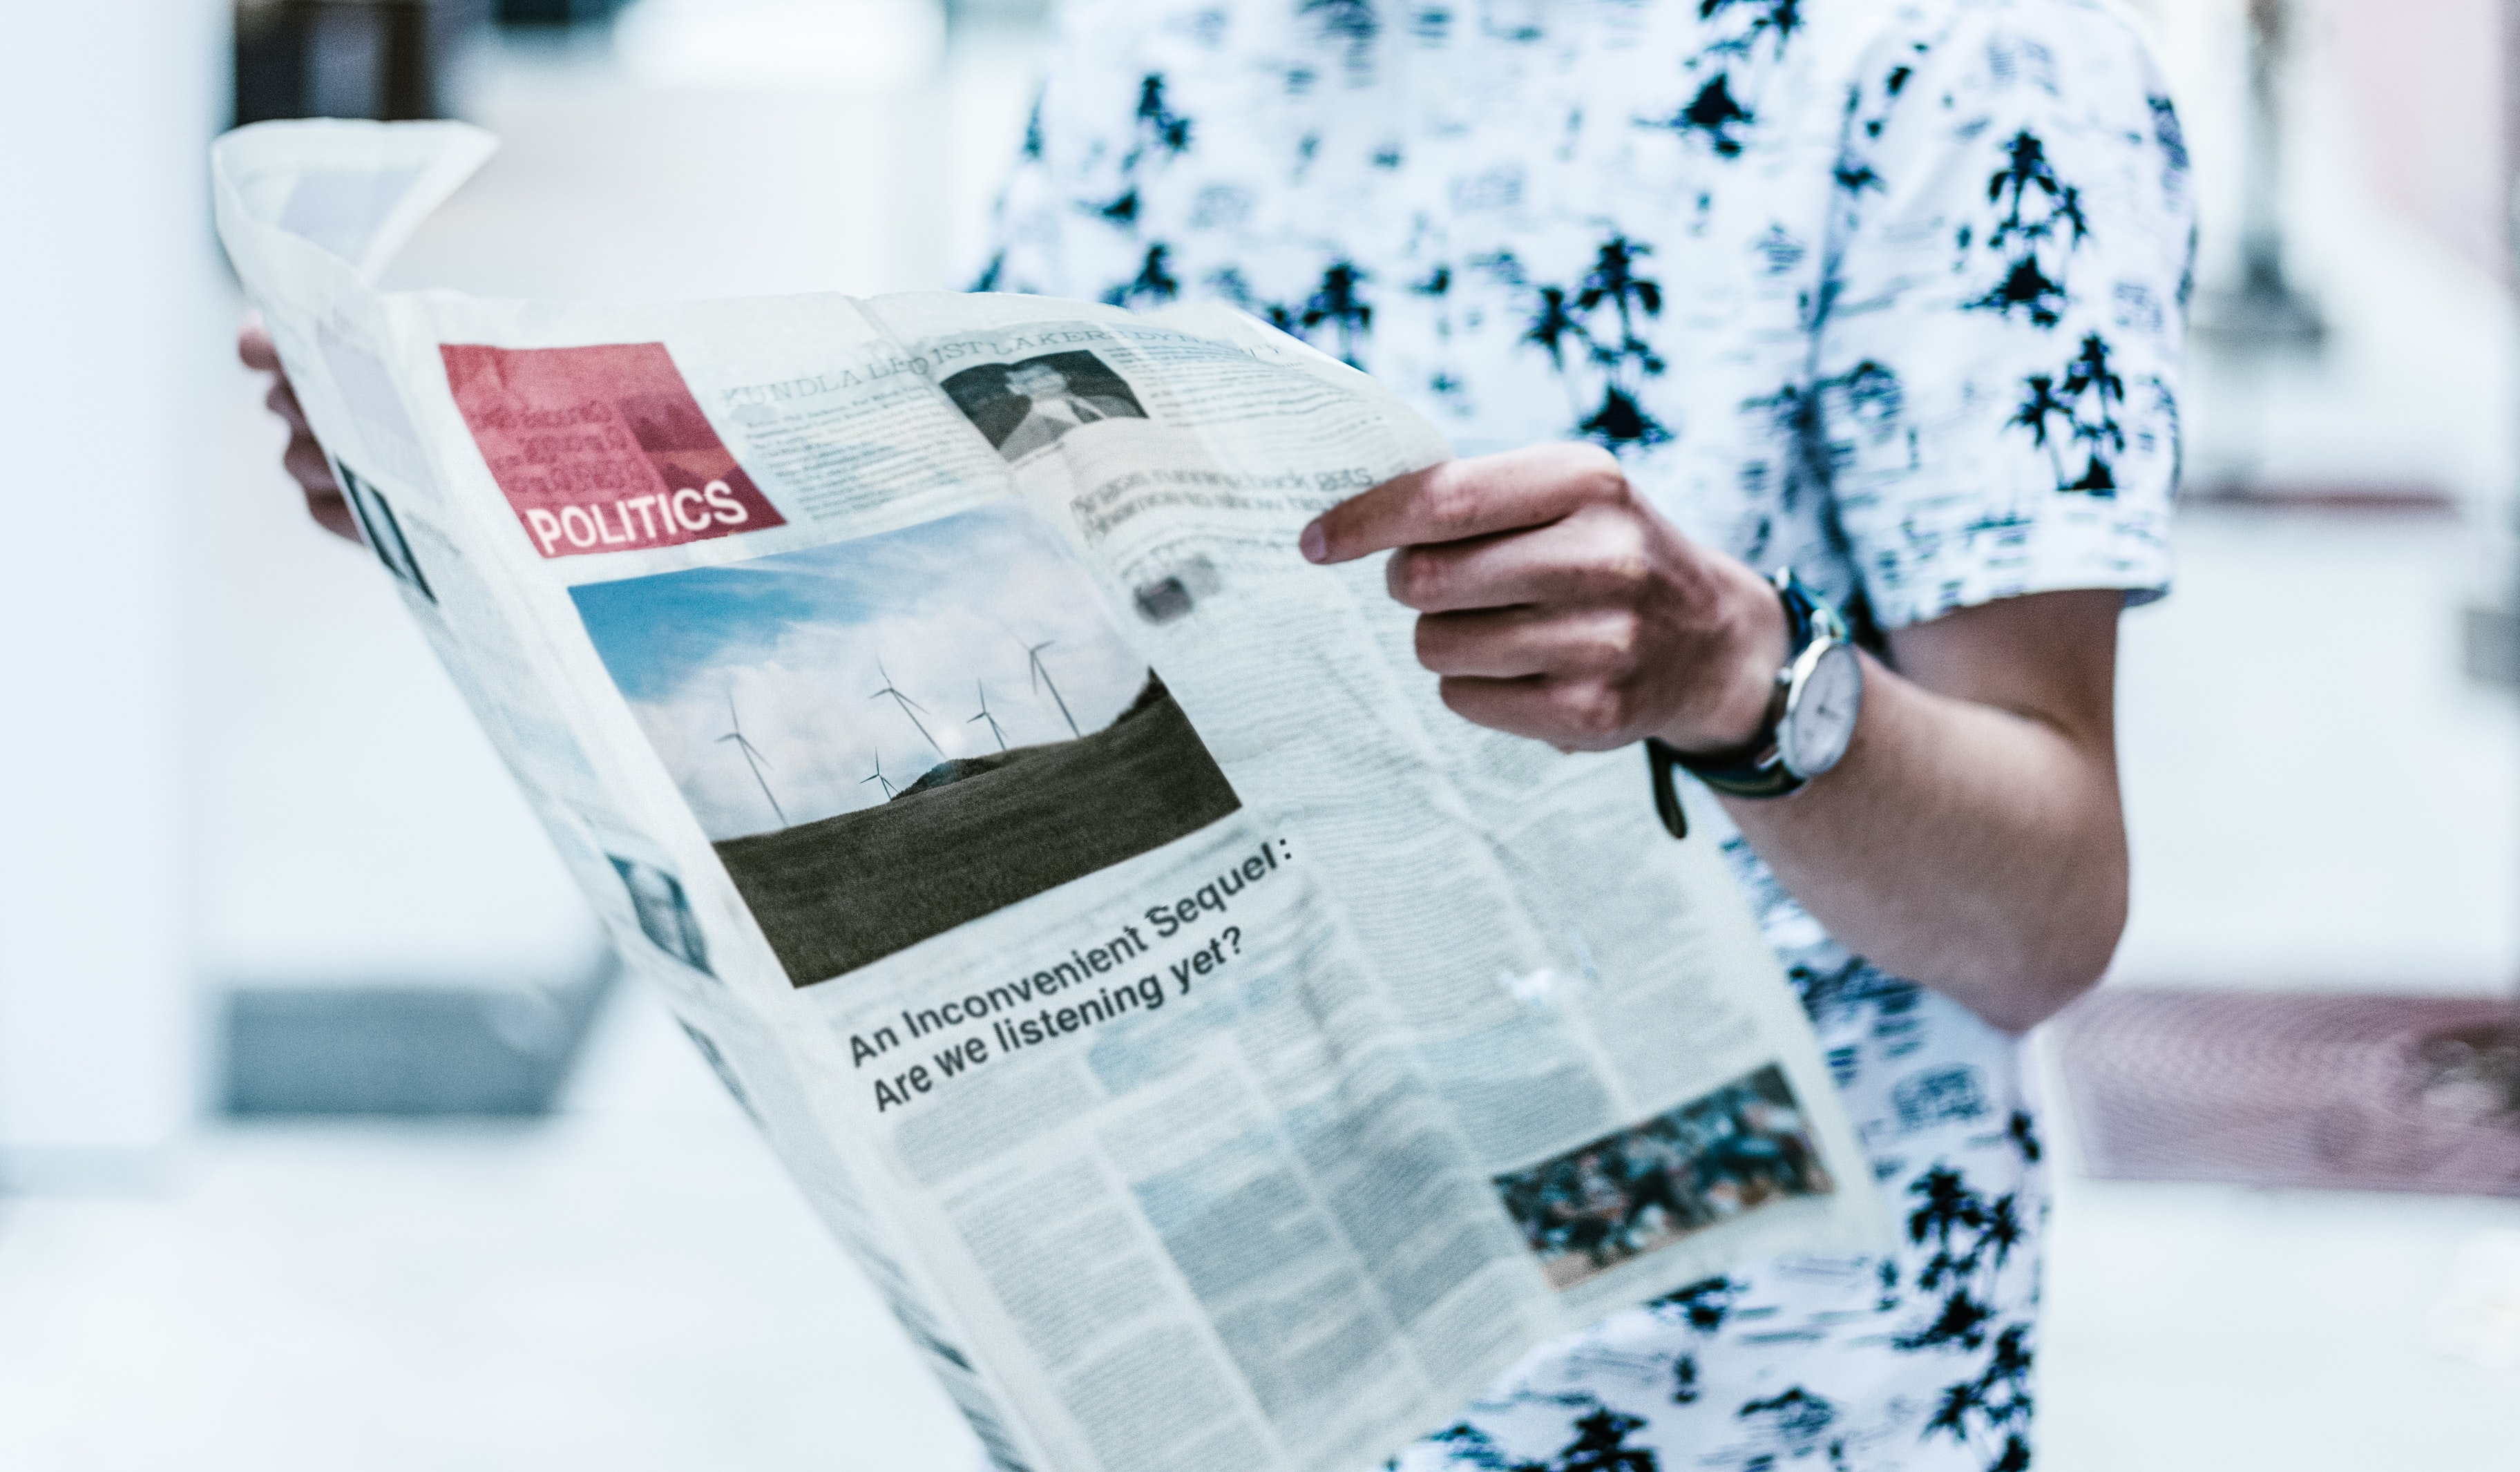 A standing man in a black and white shirt reading a newspaper